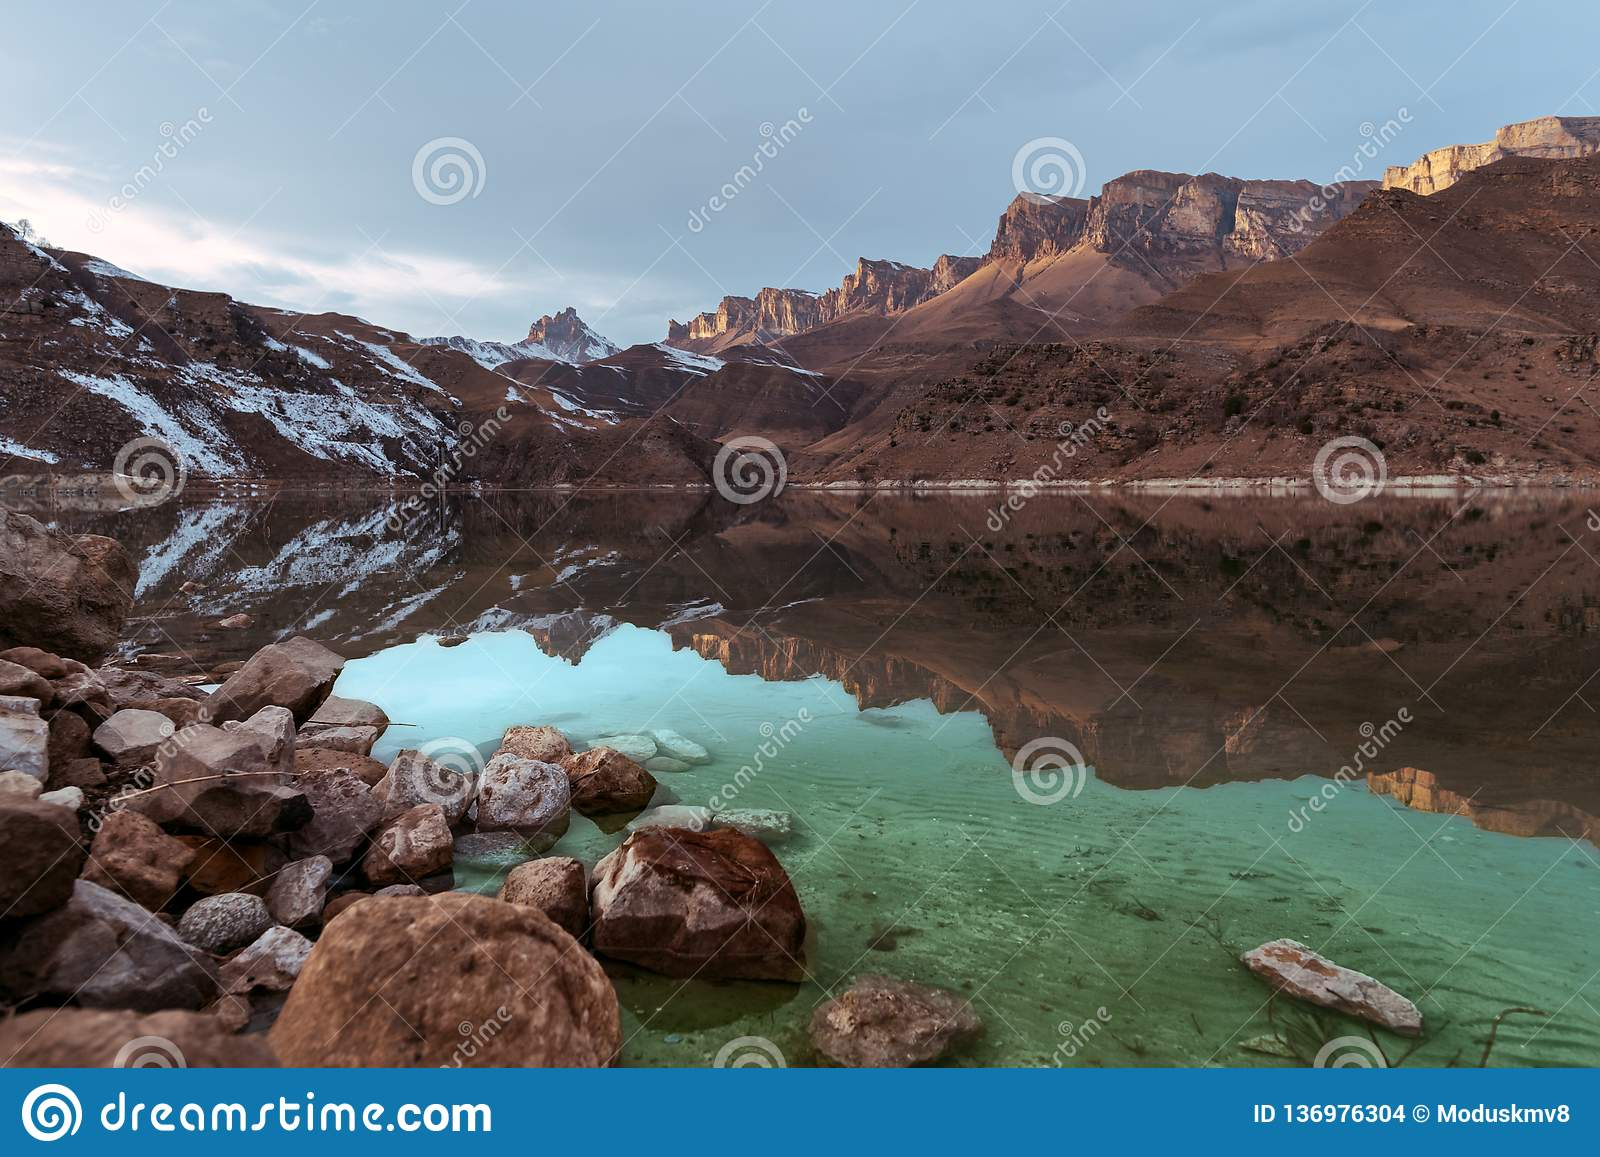 Beautiful sunset in the reflection of a mountain lake